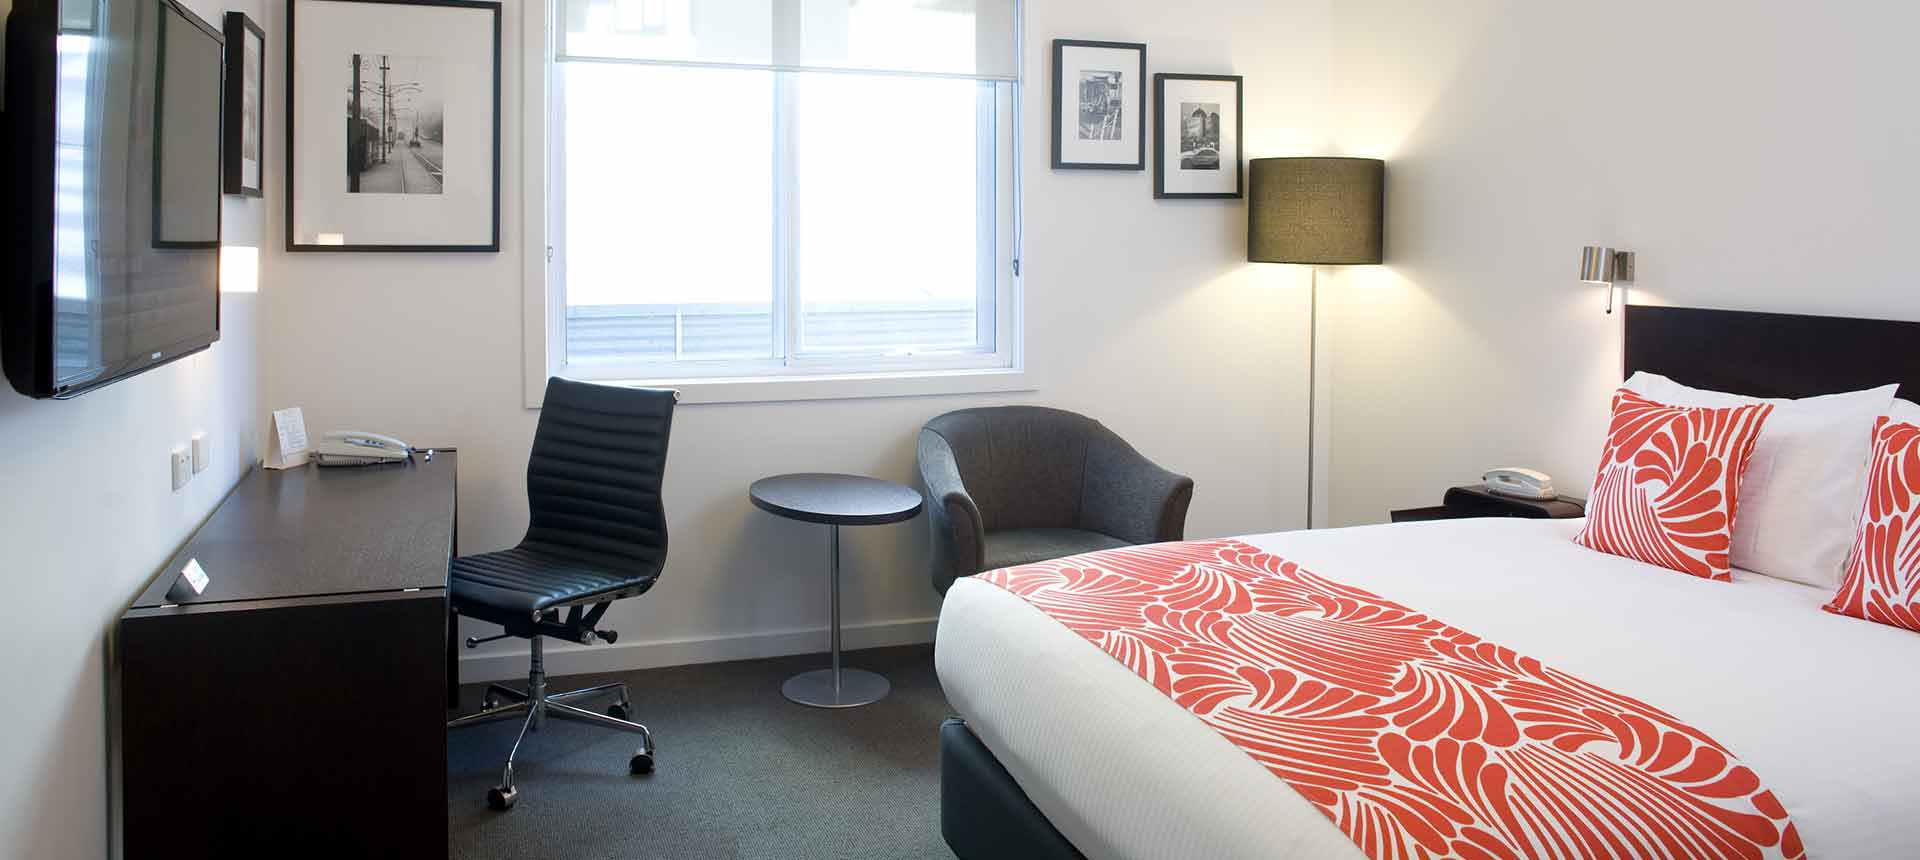 Studio Apartment Melbourne Studio Apartments Melbourne Alto Hotel Melbourne Cbd Hotel